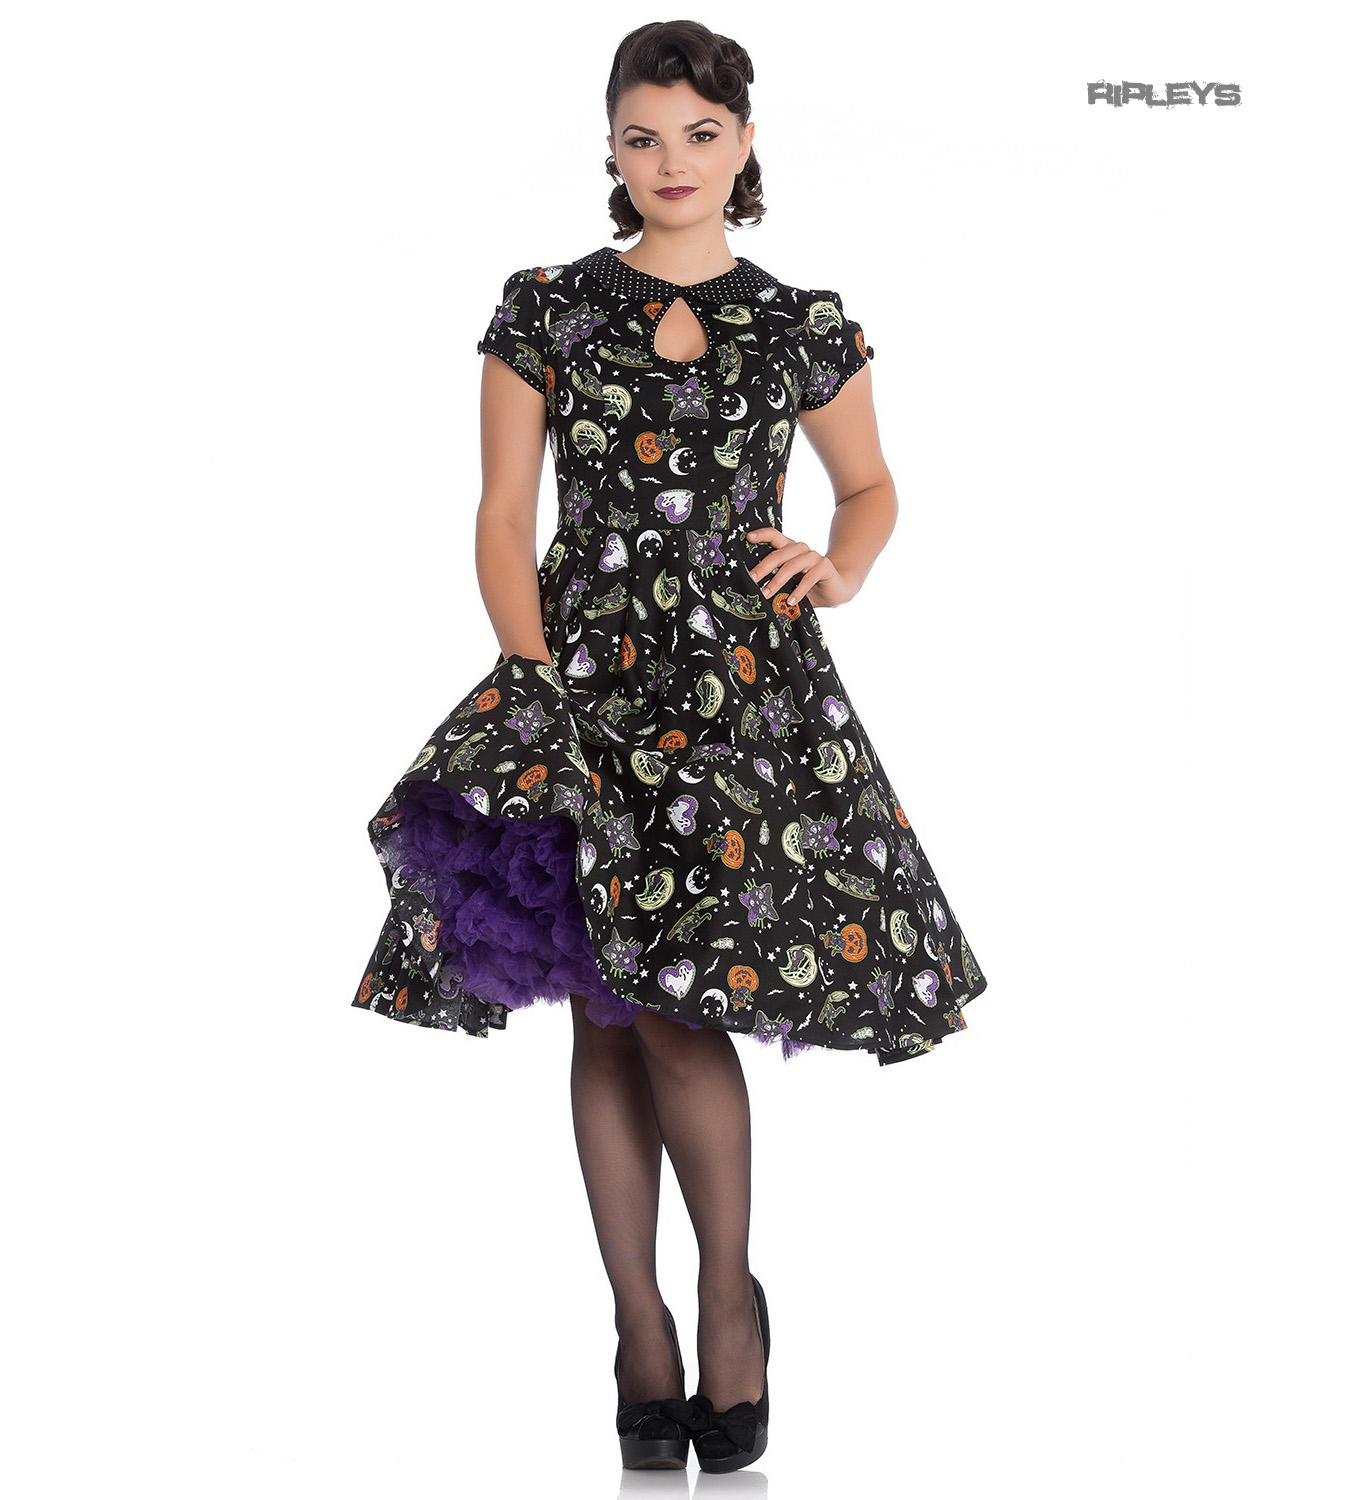 Hell-Bunny-50s-Black-Pin-Up-Dress-Horror-Witchy-SALEM-Halloween-All-Sizes thumbnail 16